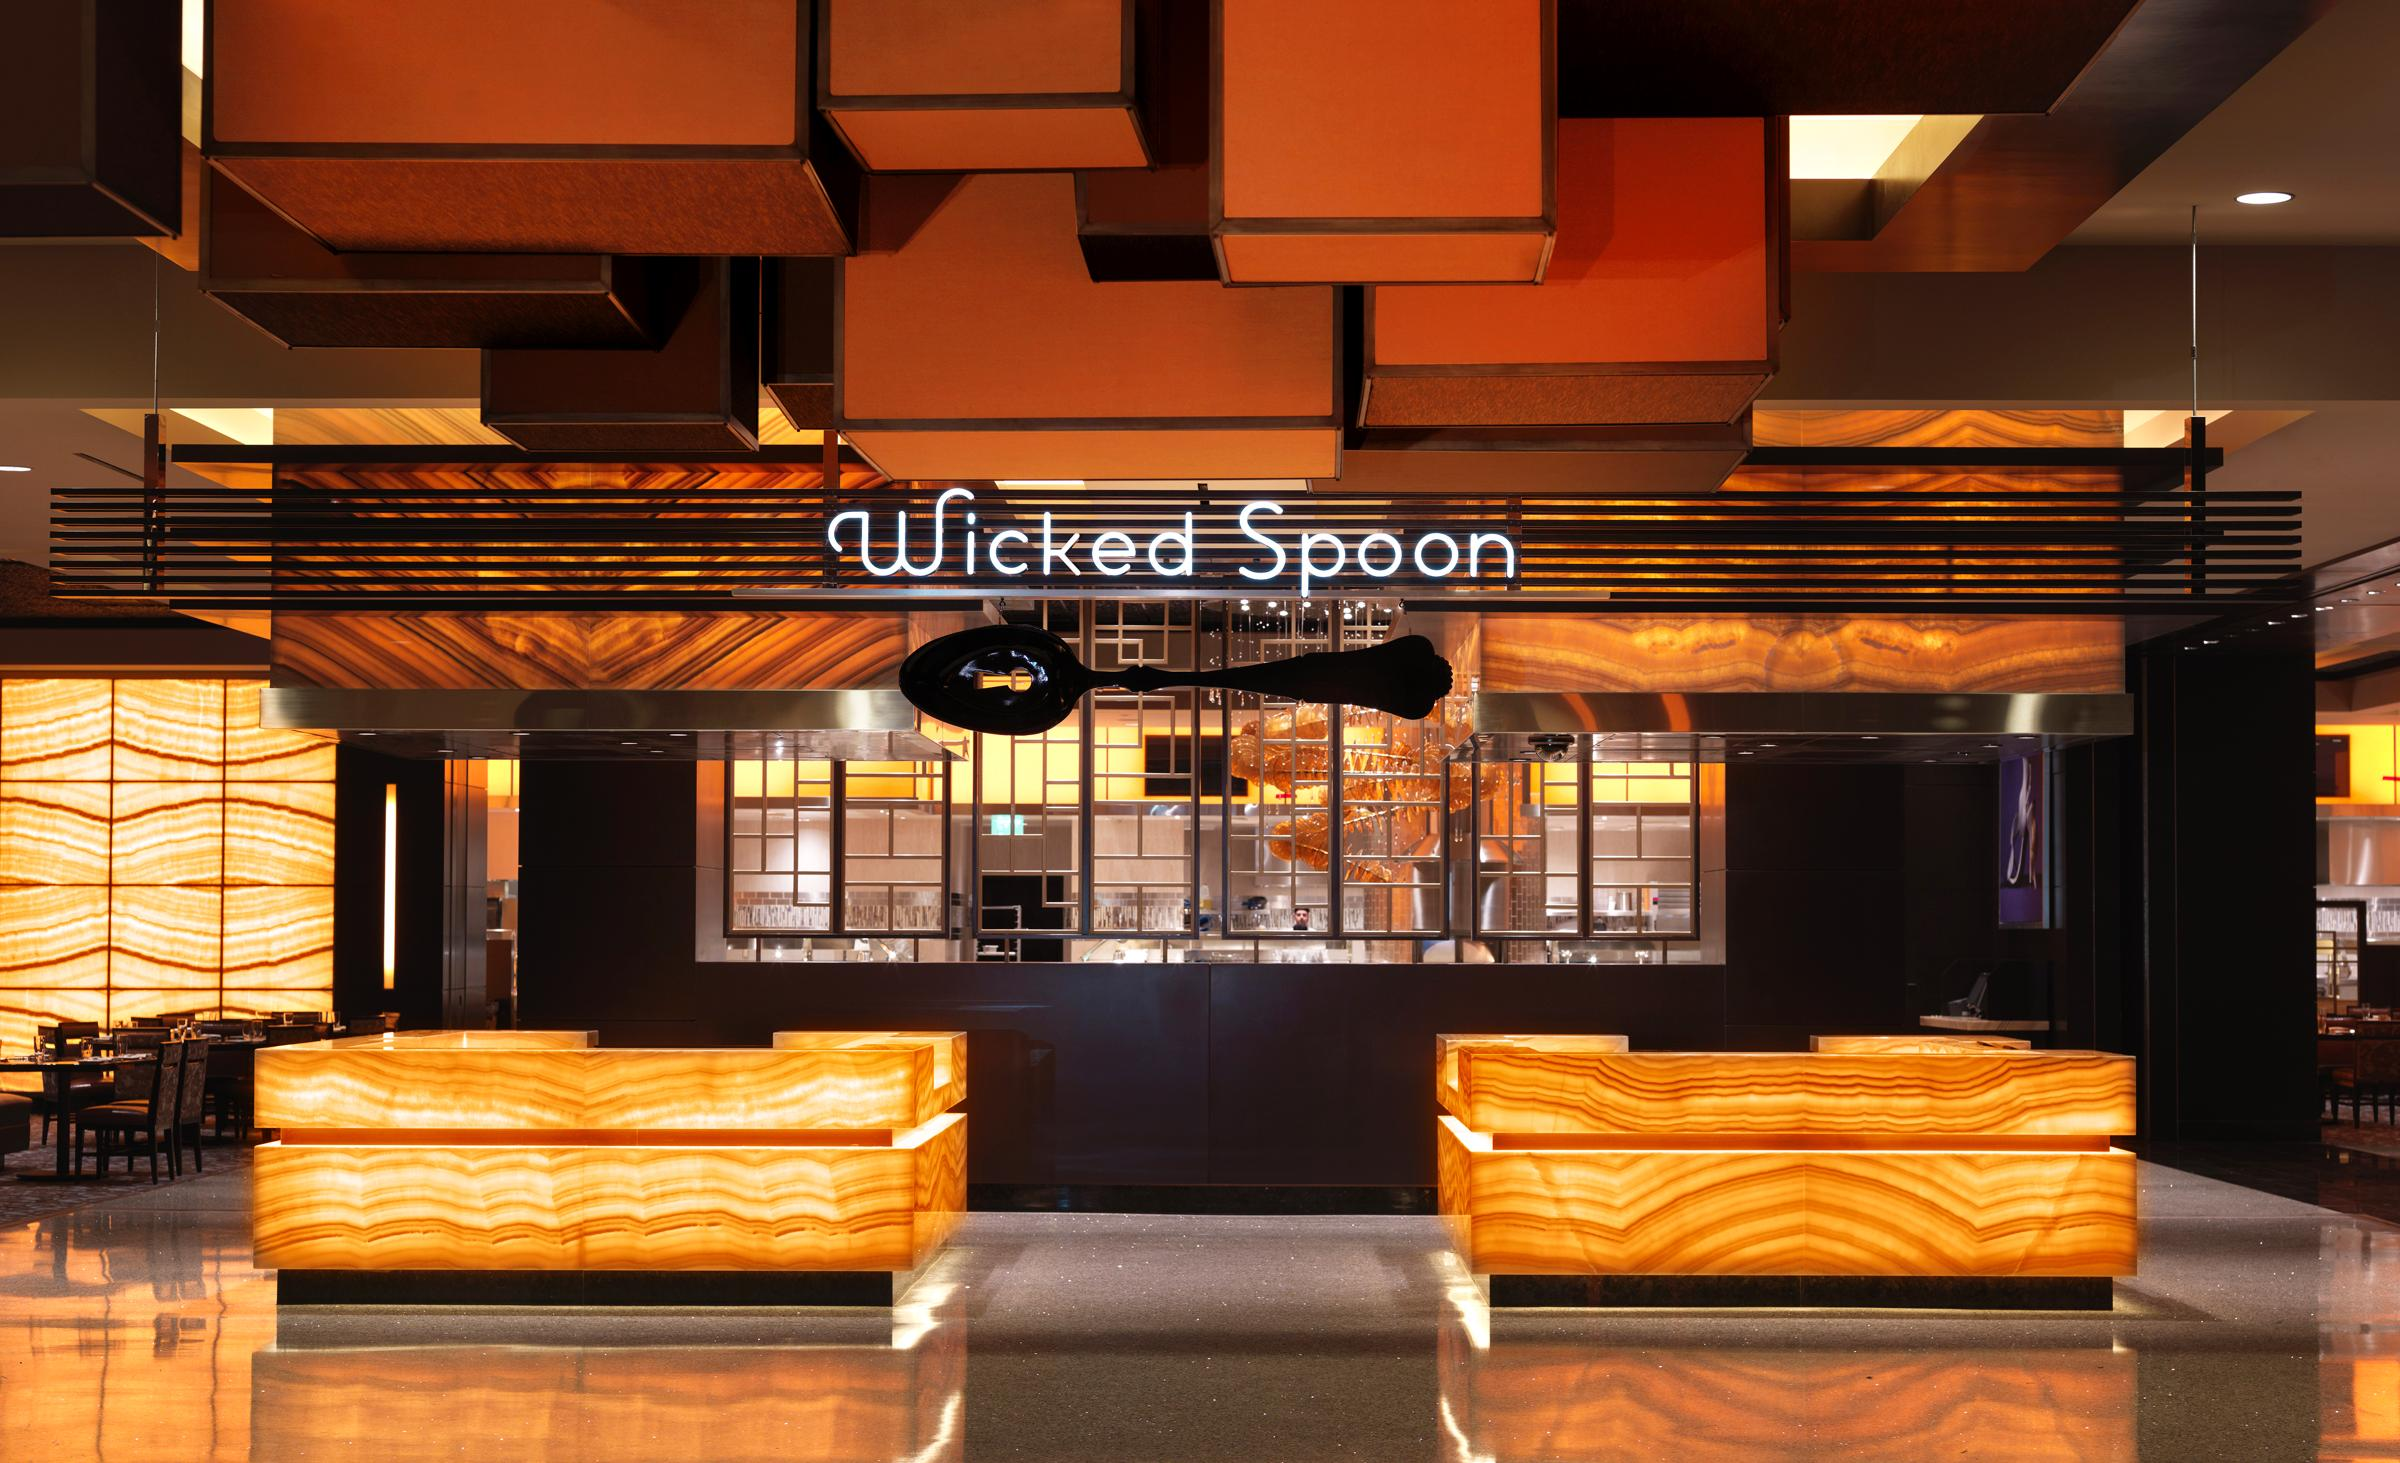 Wicked Spoon Buffet